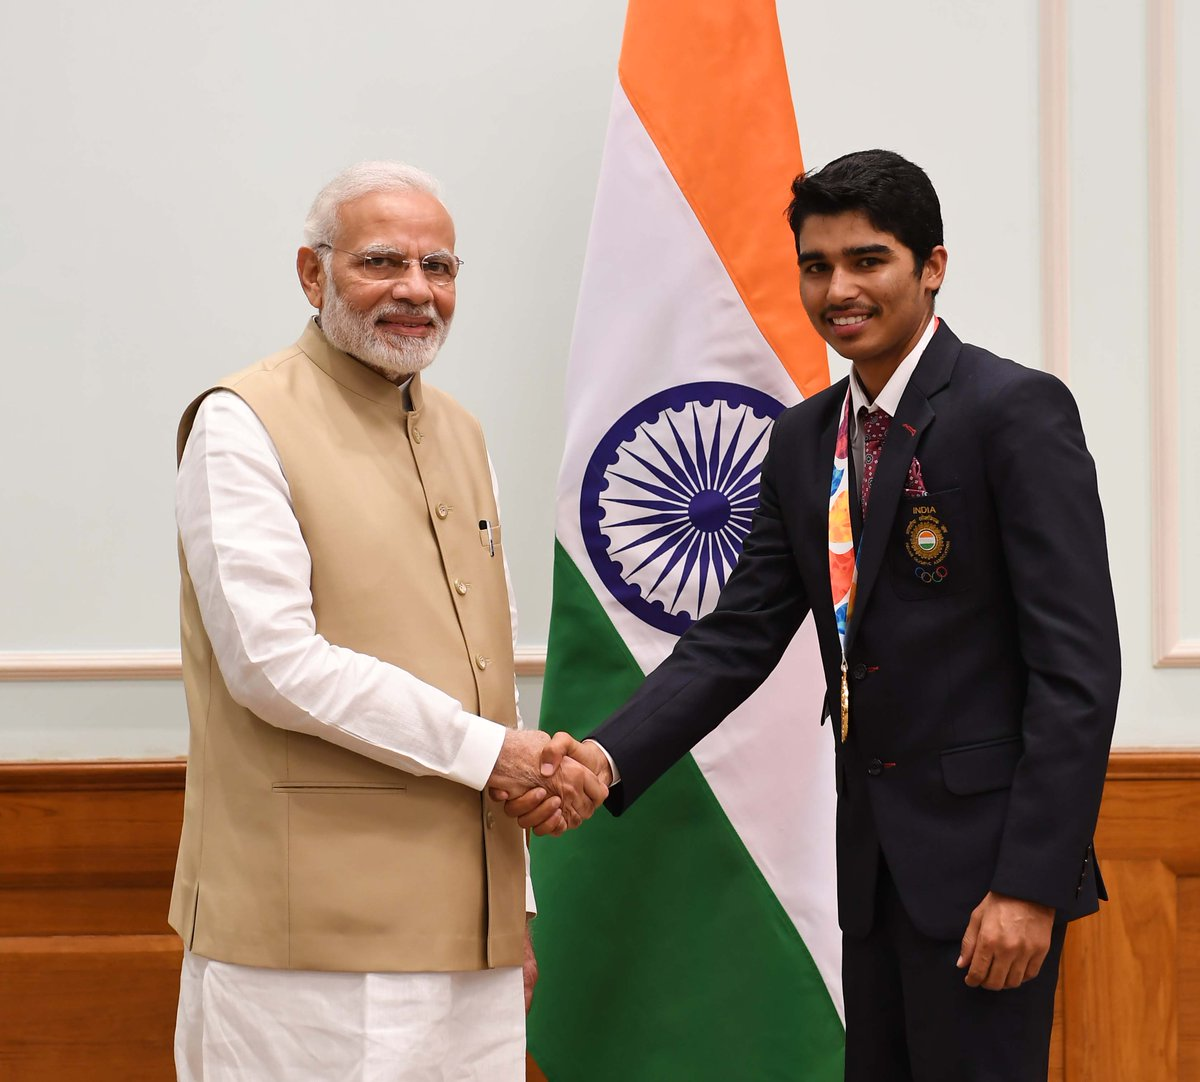 Saurabh Chaudhary is a star! He won a Gold medal in 10m Air Pistol Shooting event at @BuenosAires2018. Hailing from Meerut, he started shooting in 2015 and at the age of 16 he won his first Asian Games Gold. Glad to know that he enjoys farming.